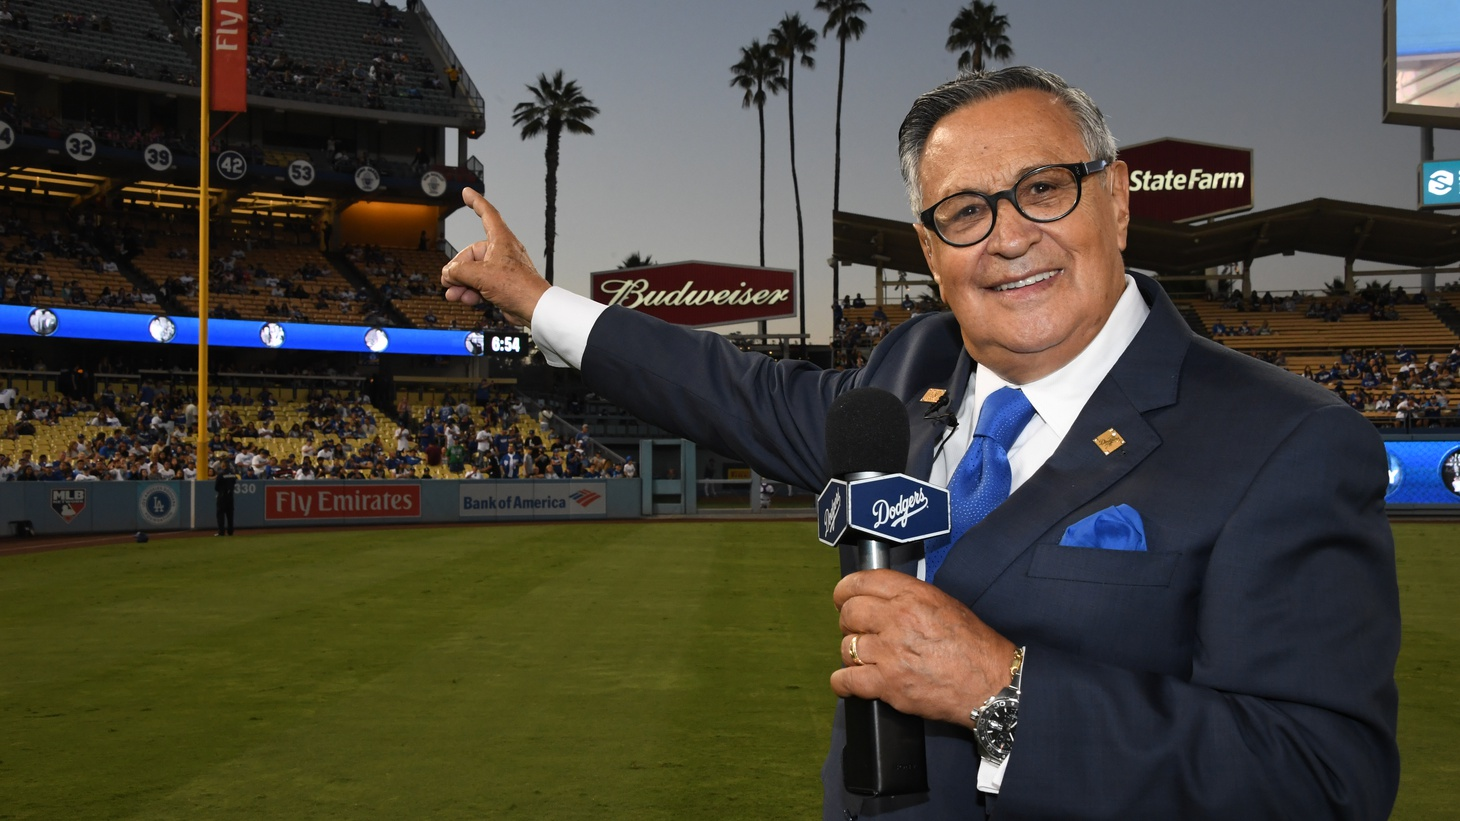 After six decades behind the mic, 2022 will be Jaime Jarrín's final year as the Spanish language broadcaster for the LA Dodgers.